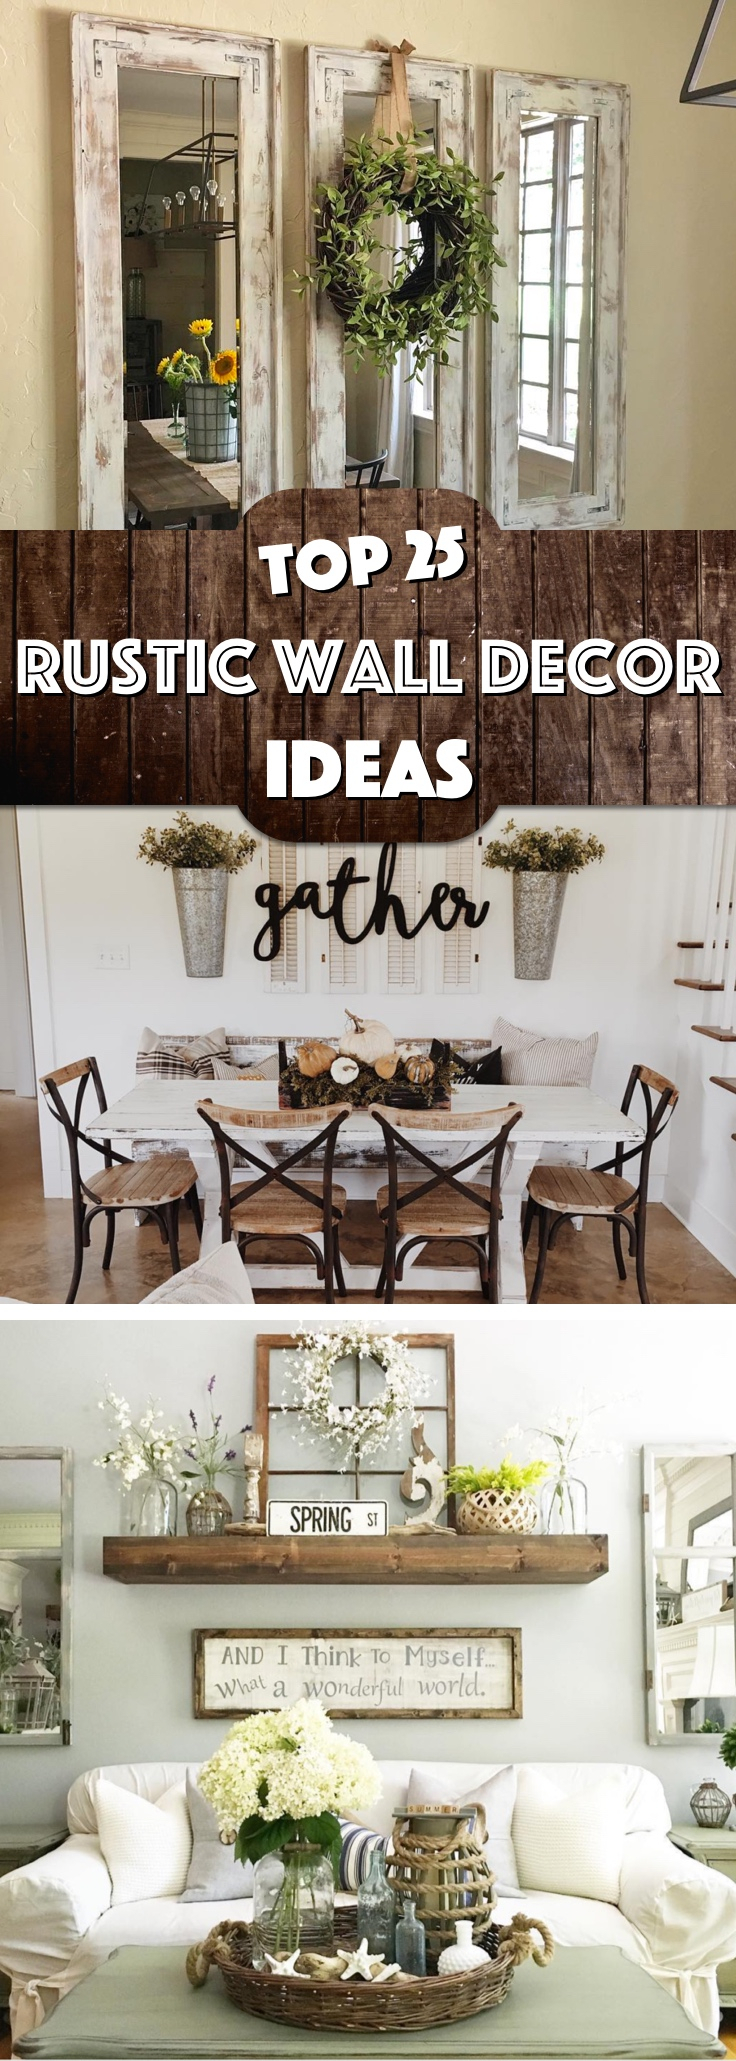 25 Must Try Rustic Wall Decor Ideas Featuring The Most Intended For Wonderful World Wall Decor (Photo 25 of 30)